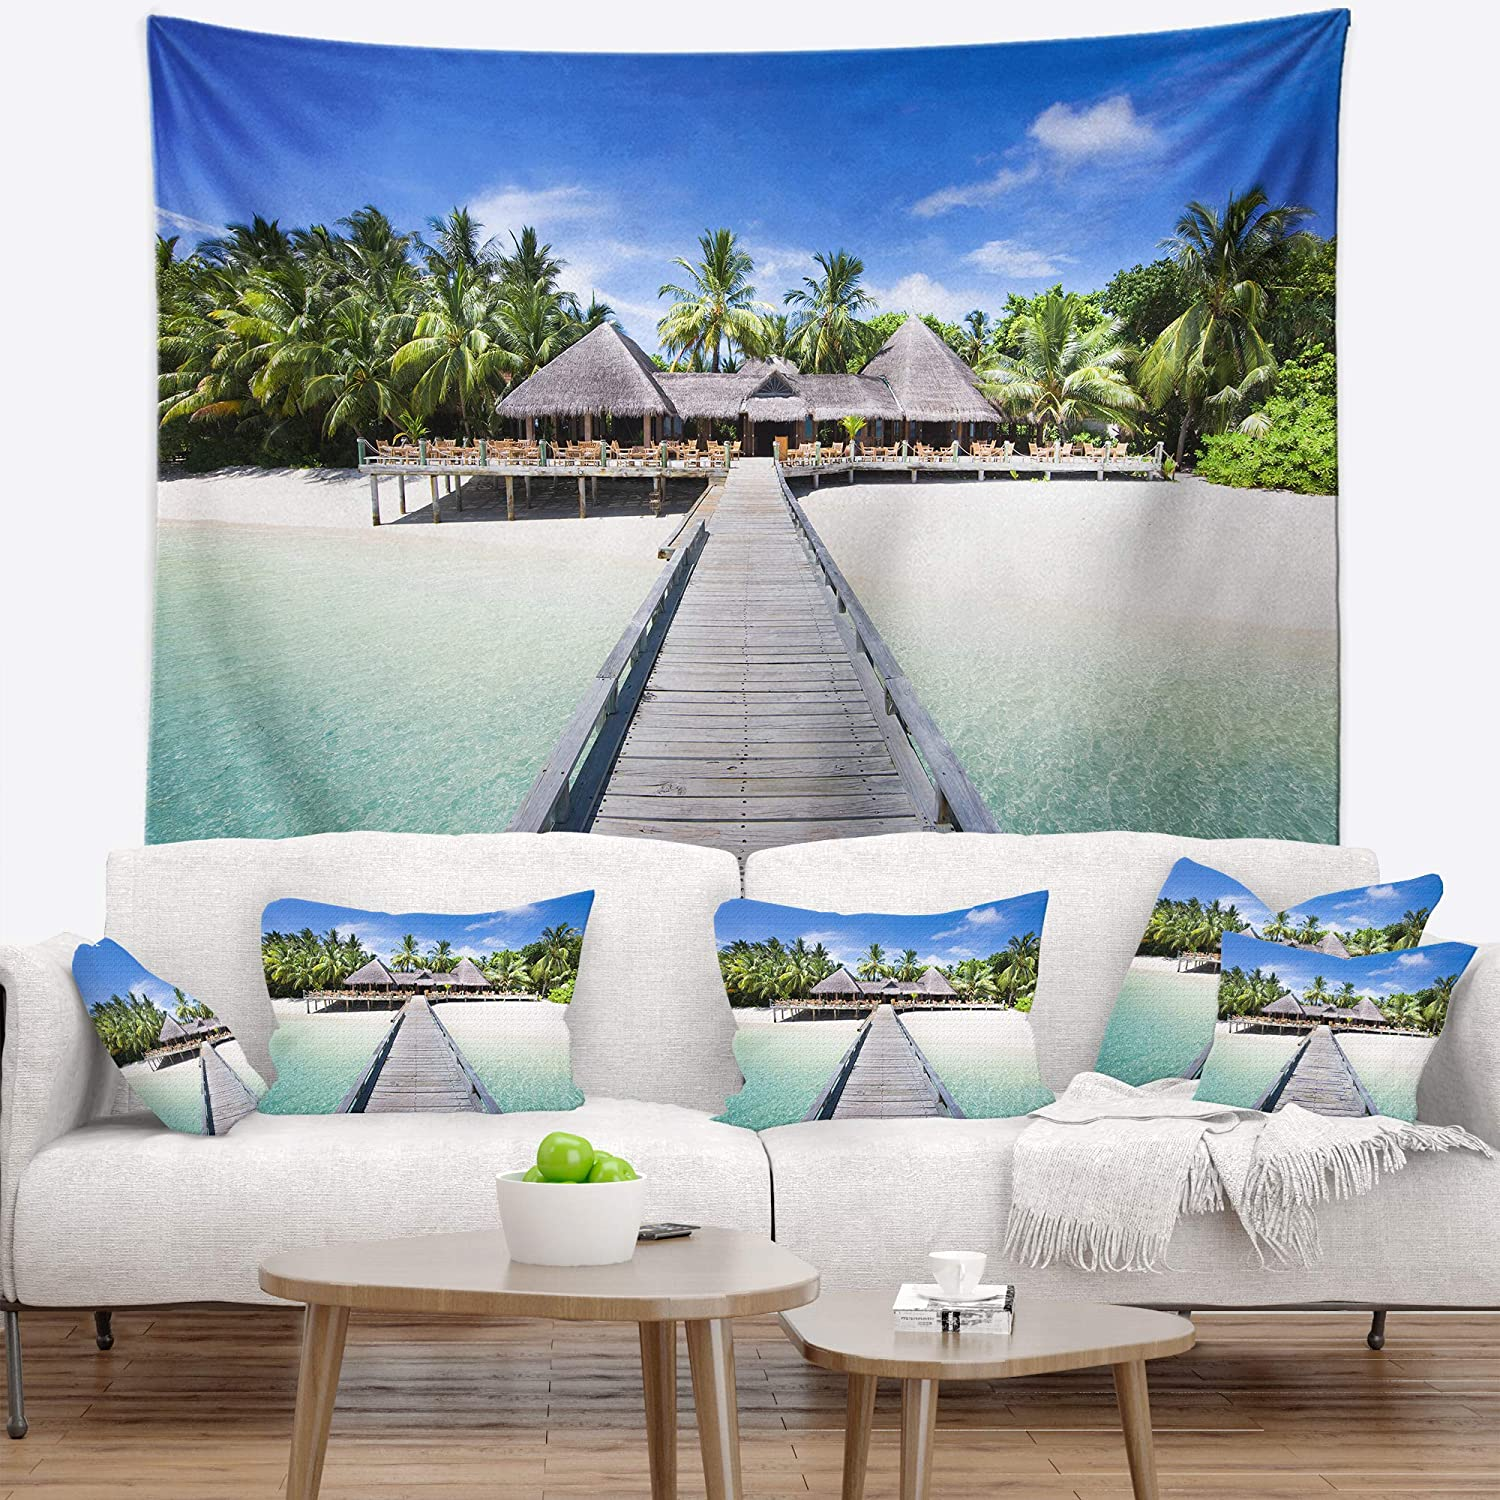 Designart TAP8629-80-68  Beach with Coconut Palm Trees Landscape Photo Blanket D/écor Art for Home and Office Wall Tapestry x Large 80 in x 68 in Created On Lightweight Polyester Fabric